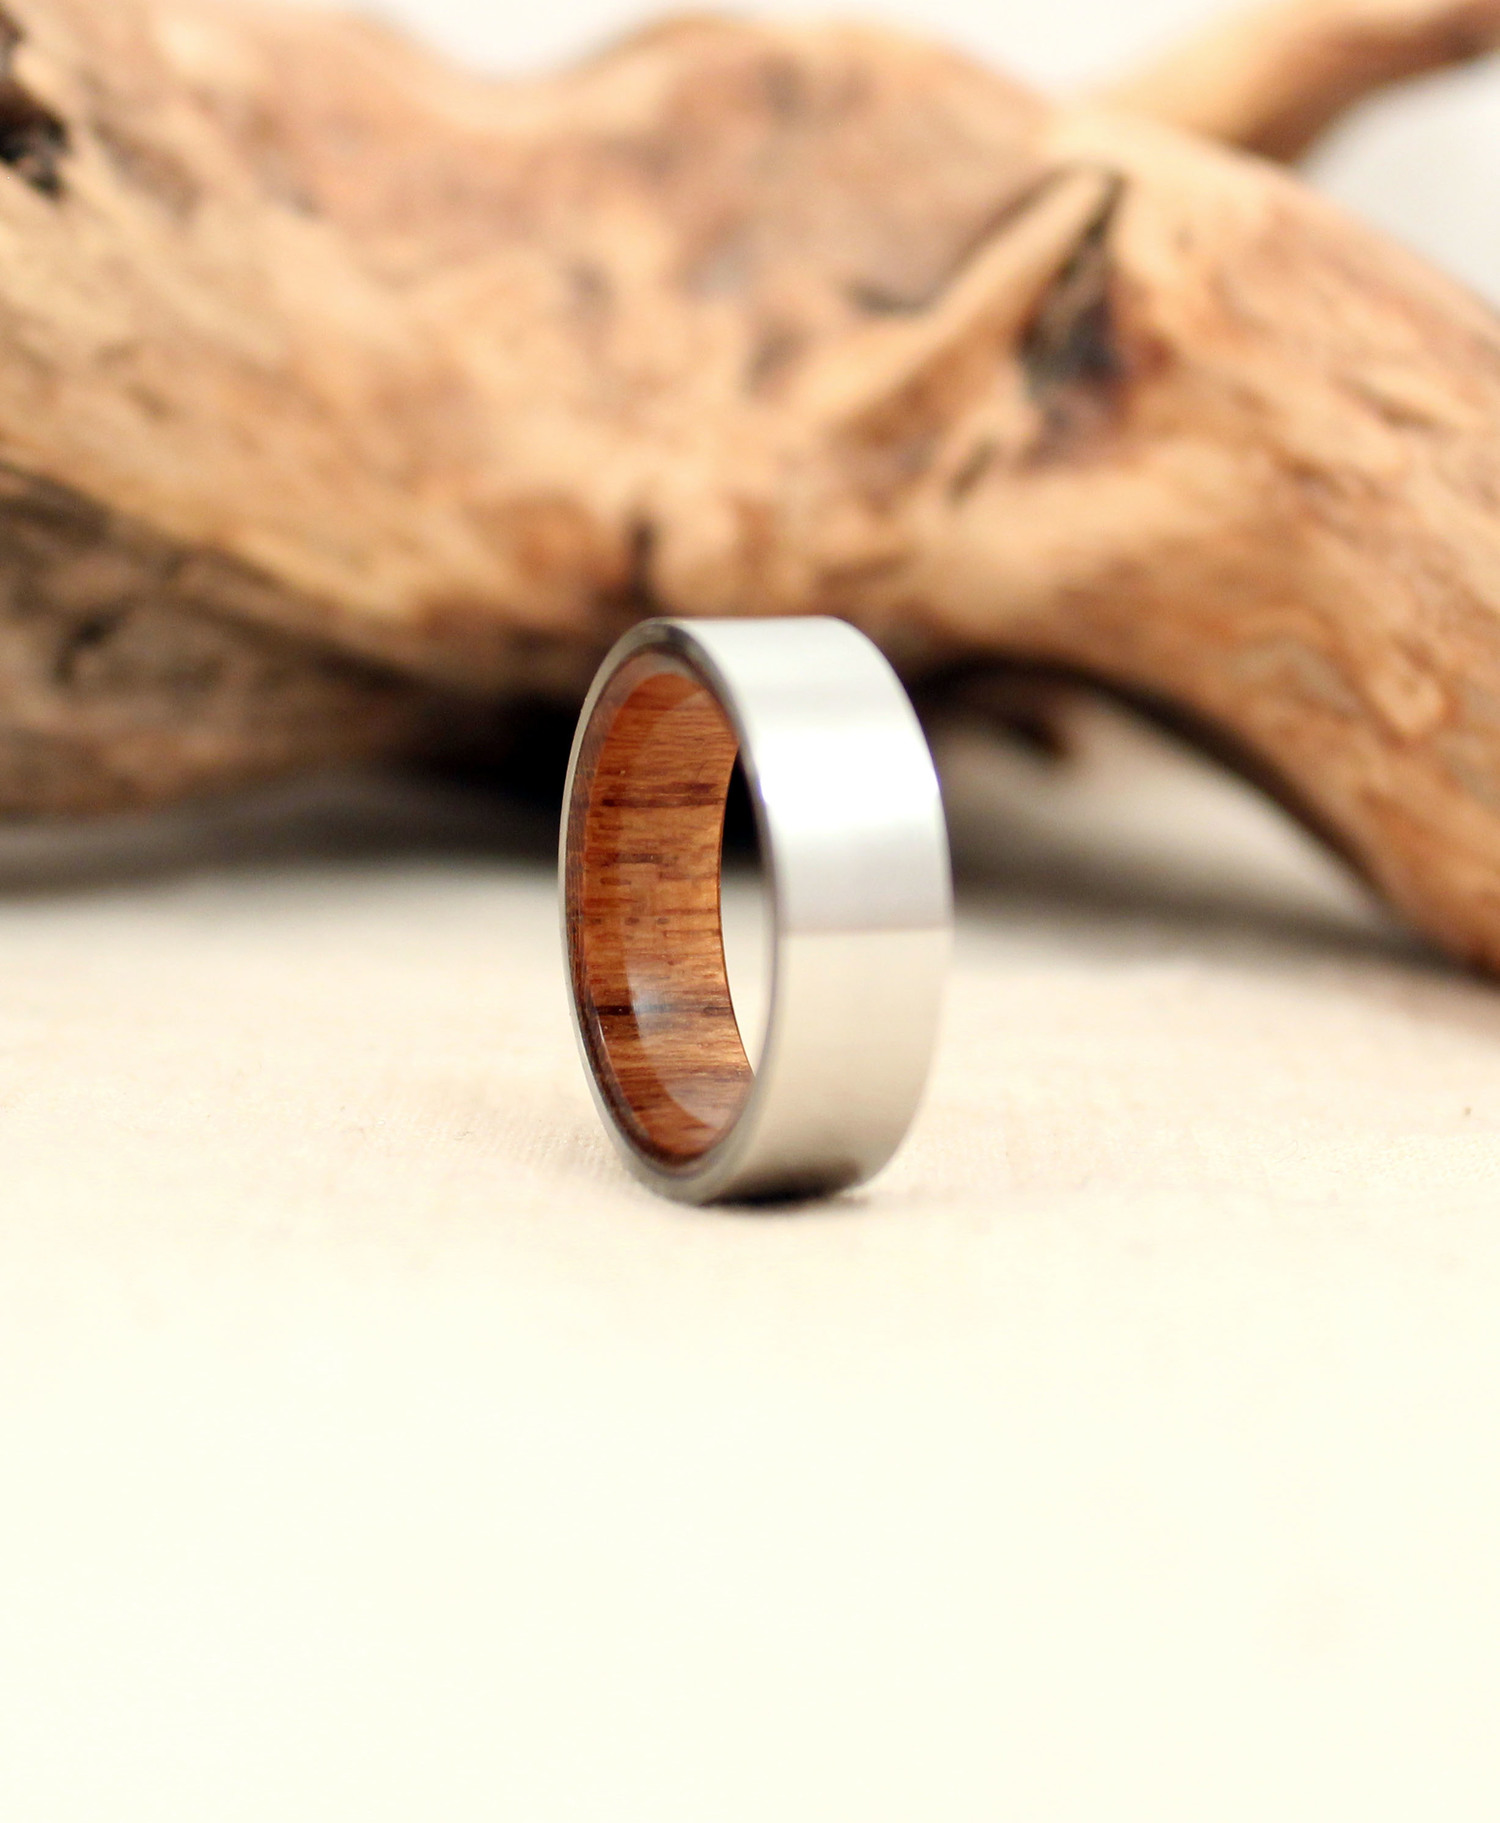 profile teak maple wedding incorruptible rings stock liner ring with in simply wooden copy birch wood d